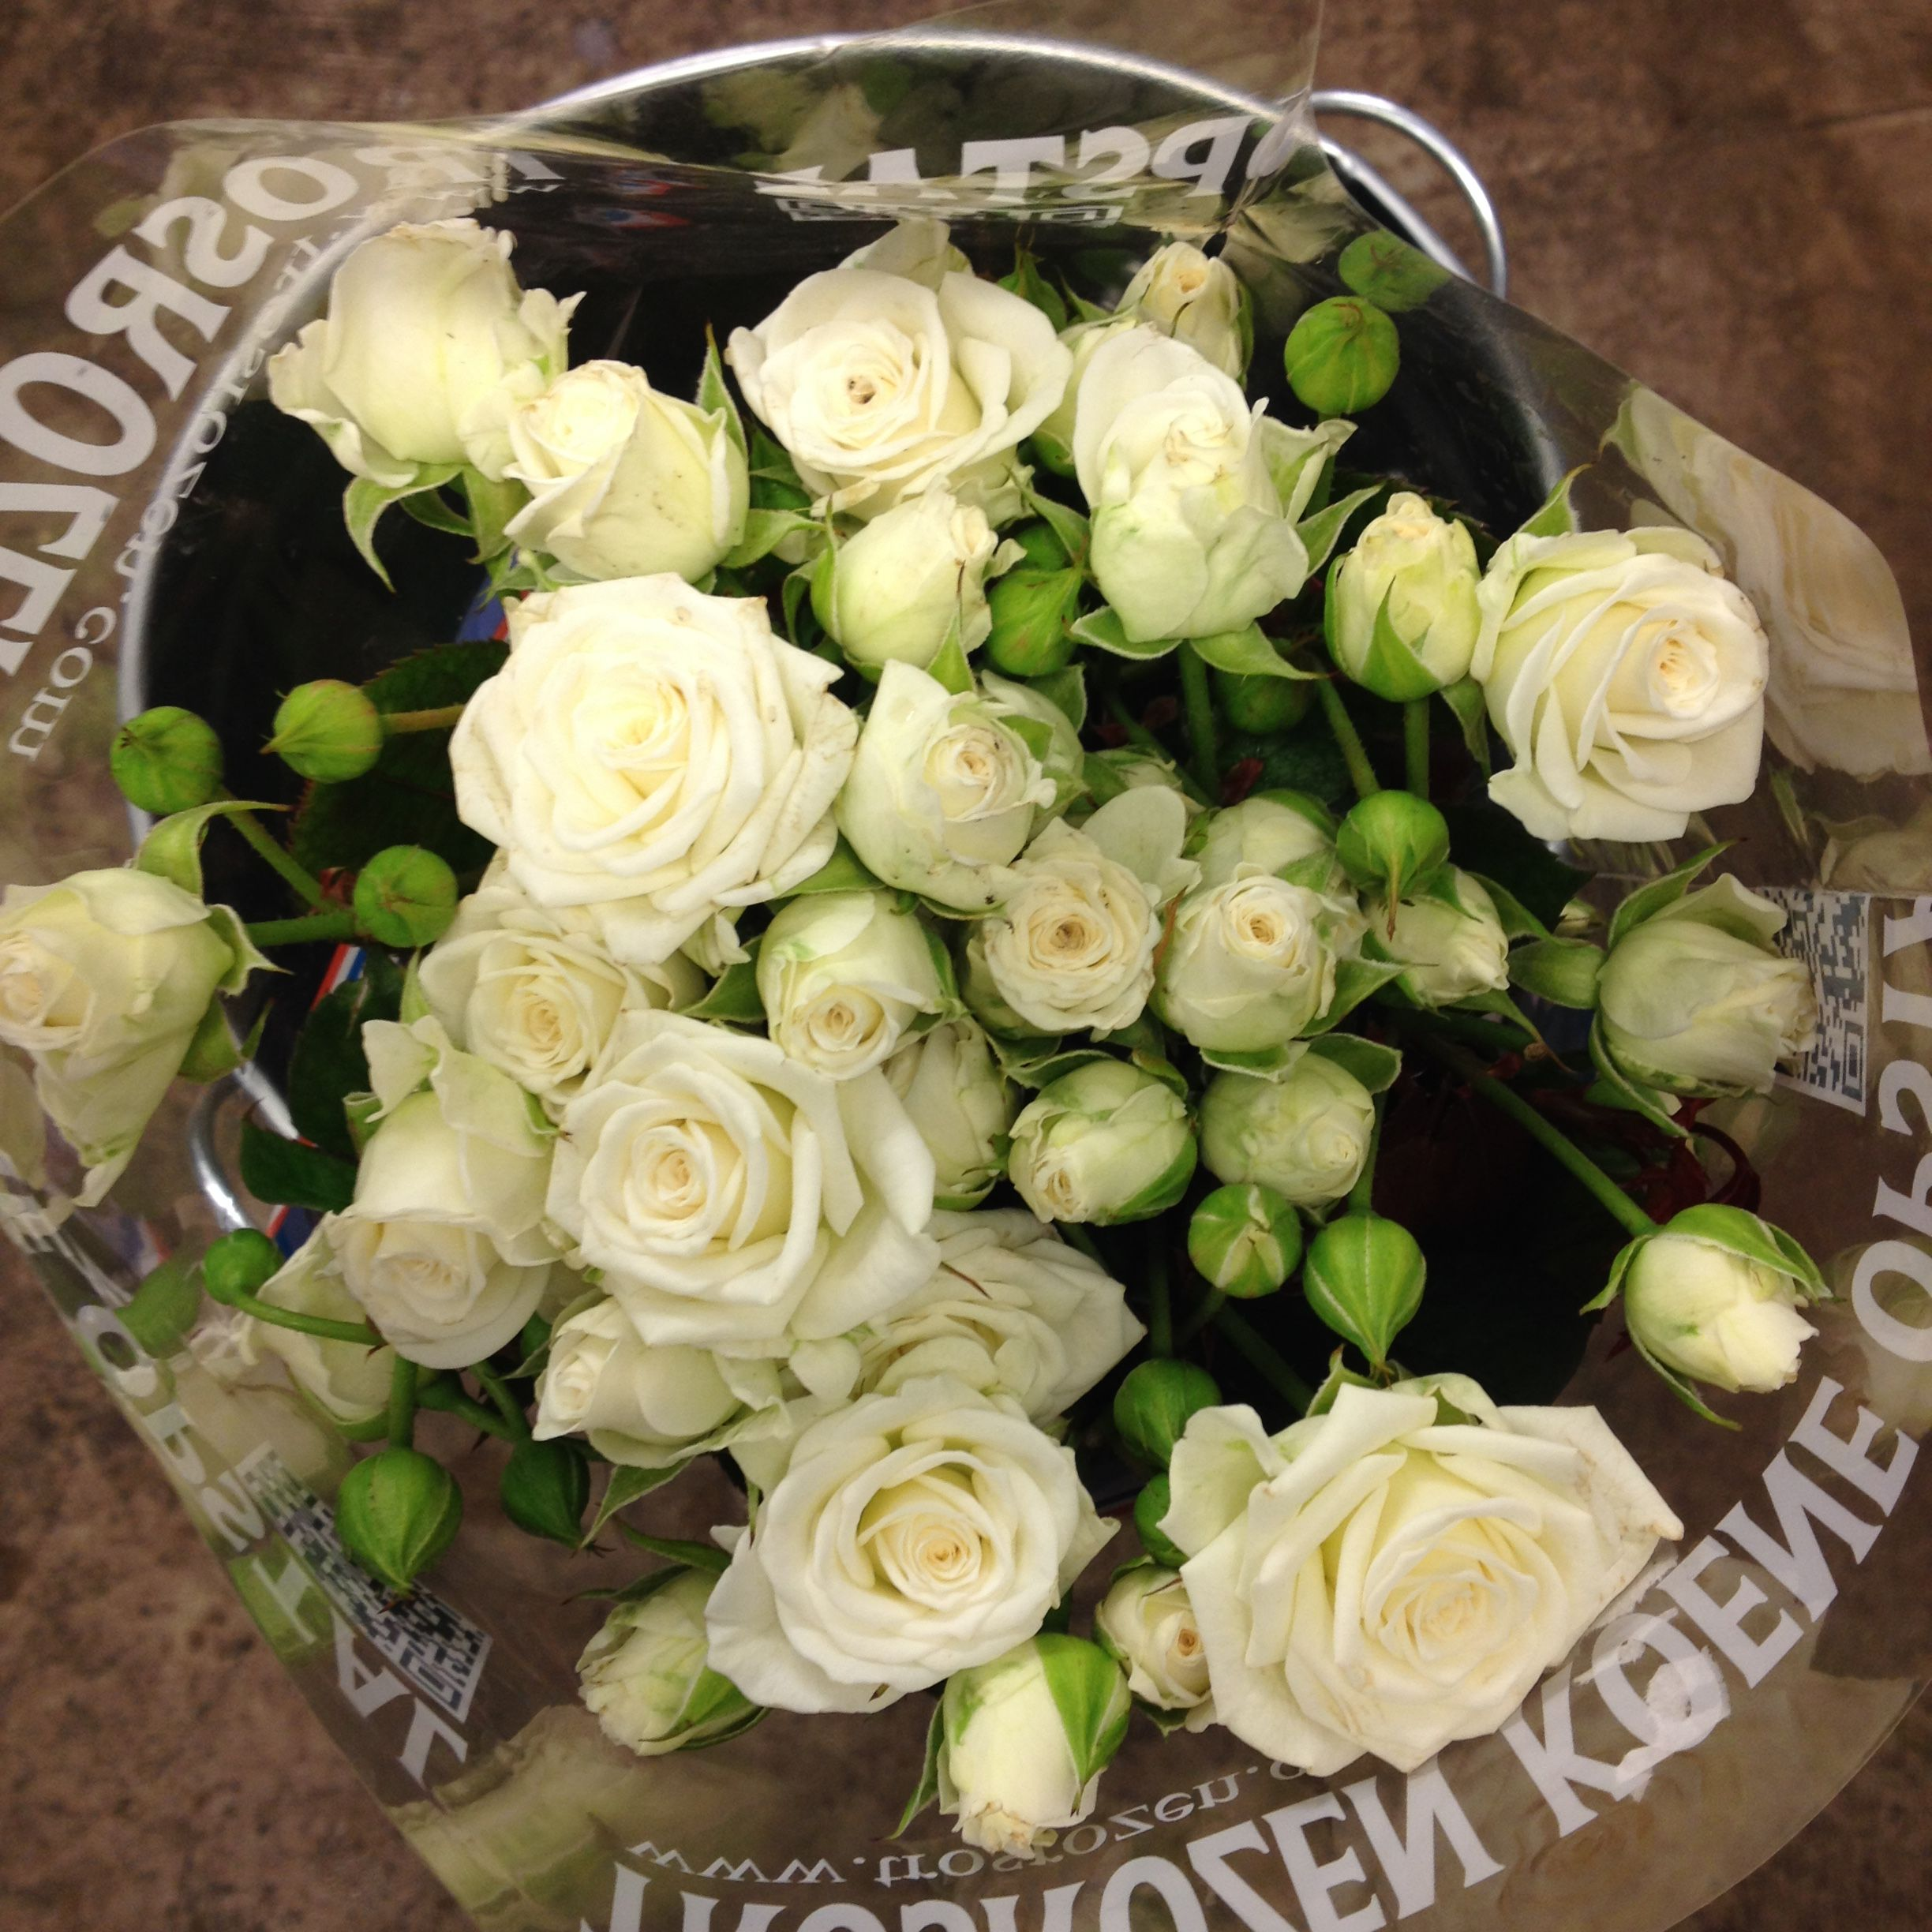 Home bulk roses peach roses - White Spray Roses White Lady Sold In Bunches Of 10 Stems From The Flowermonger